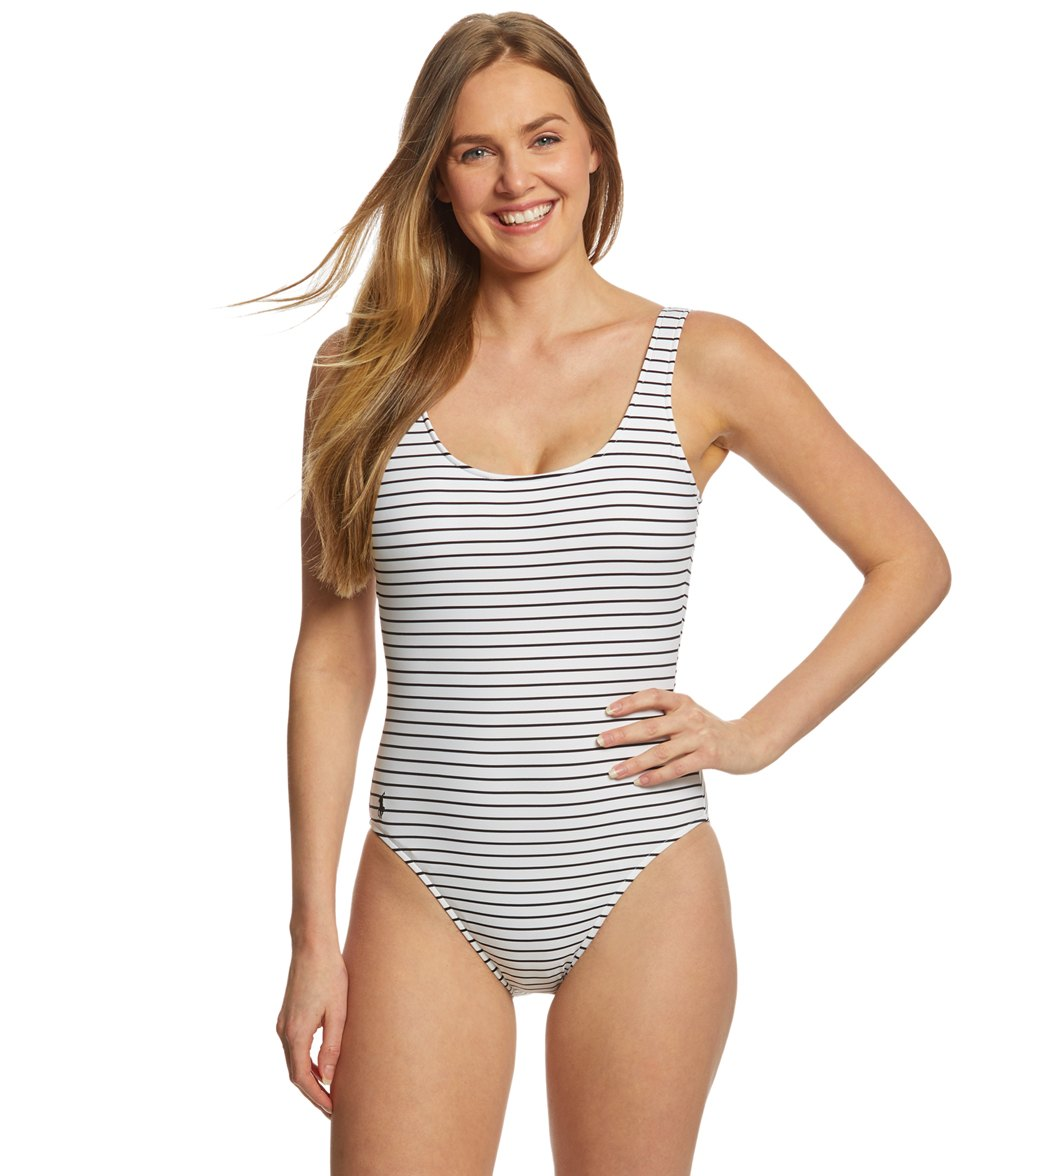 f1504a8632b ... Stripes Lace Back One Piece Swimsuit. Play Video. MODEL MEASUREMENTS